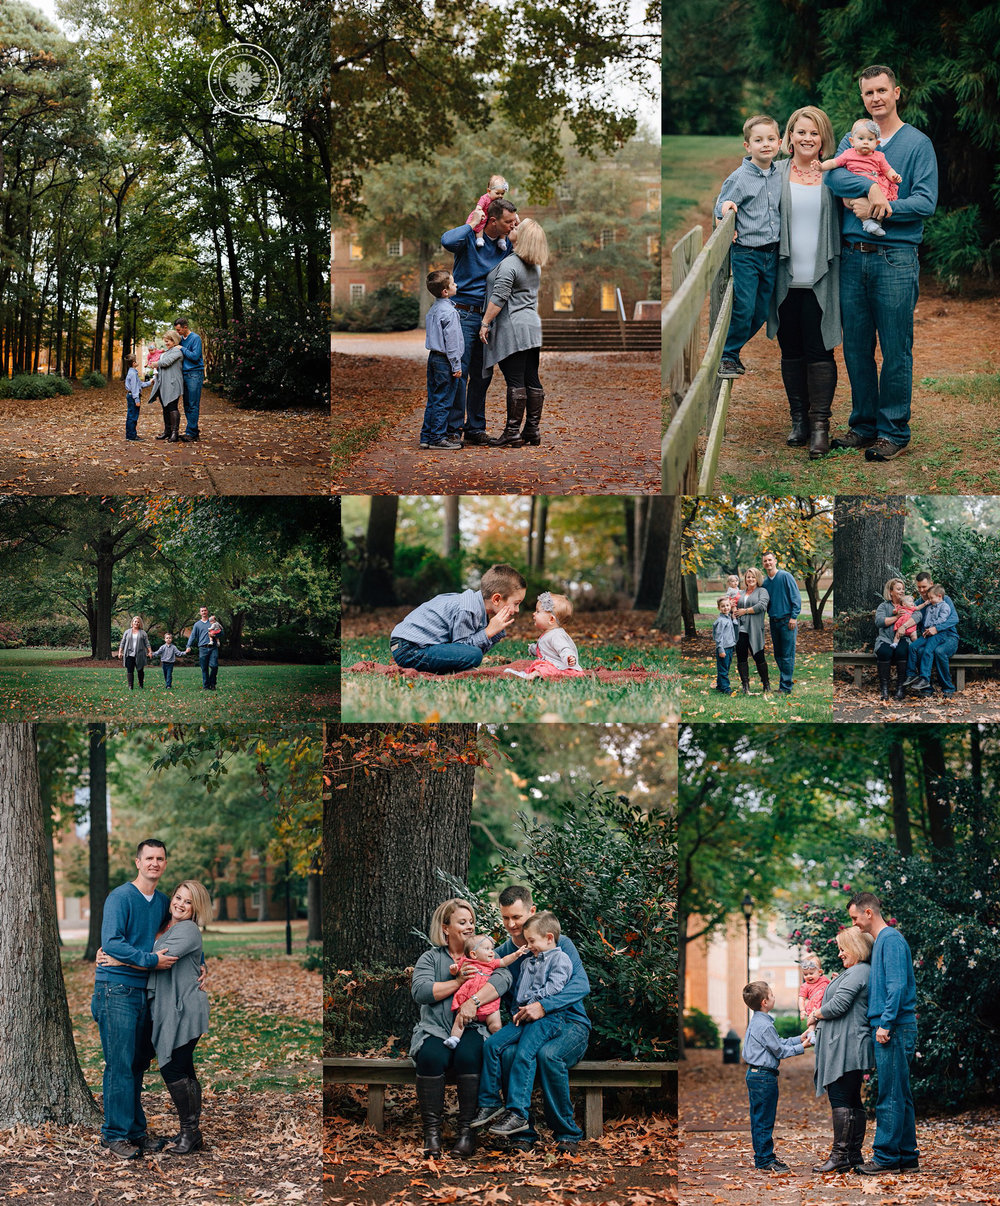 norfolk-chesapeake-suffolk-virginia-beach-photographers-family-family-session-fall-portraits-holiday-card-photos-melissa-bliss-photography